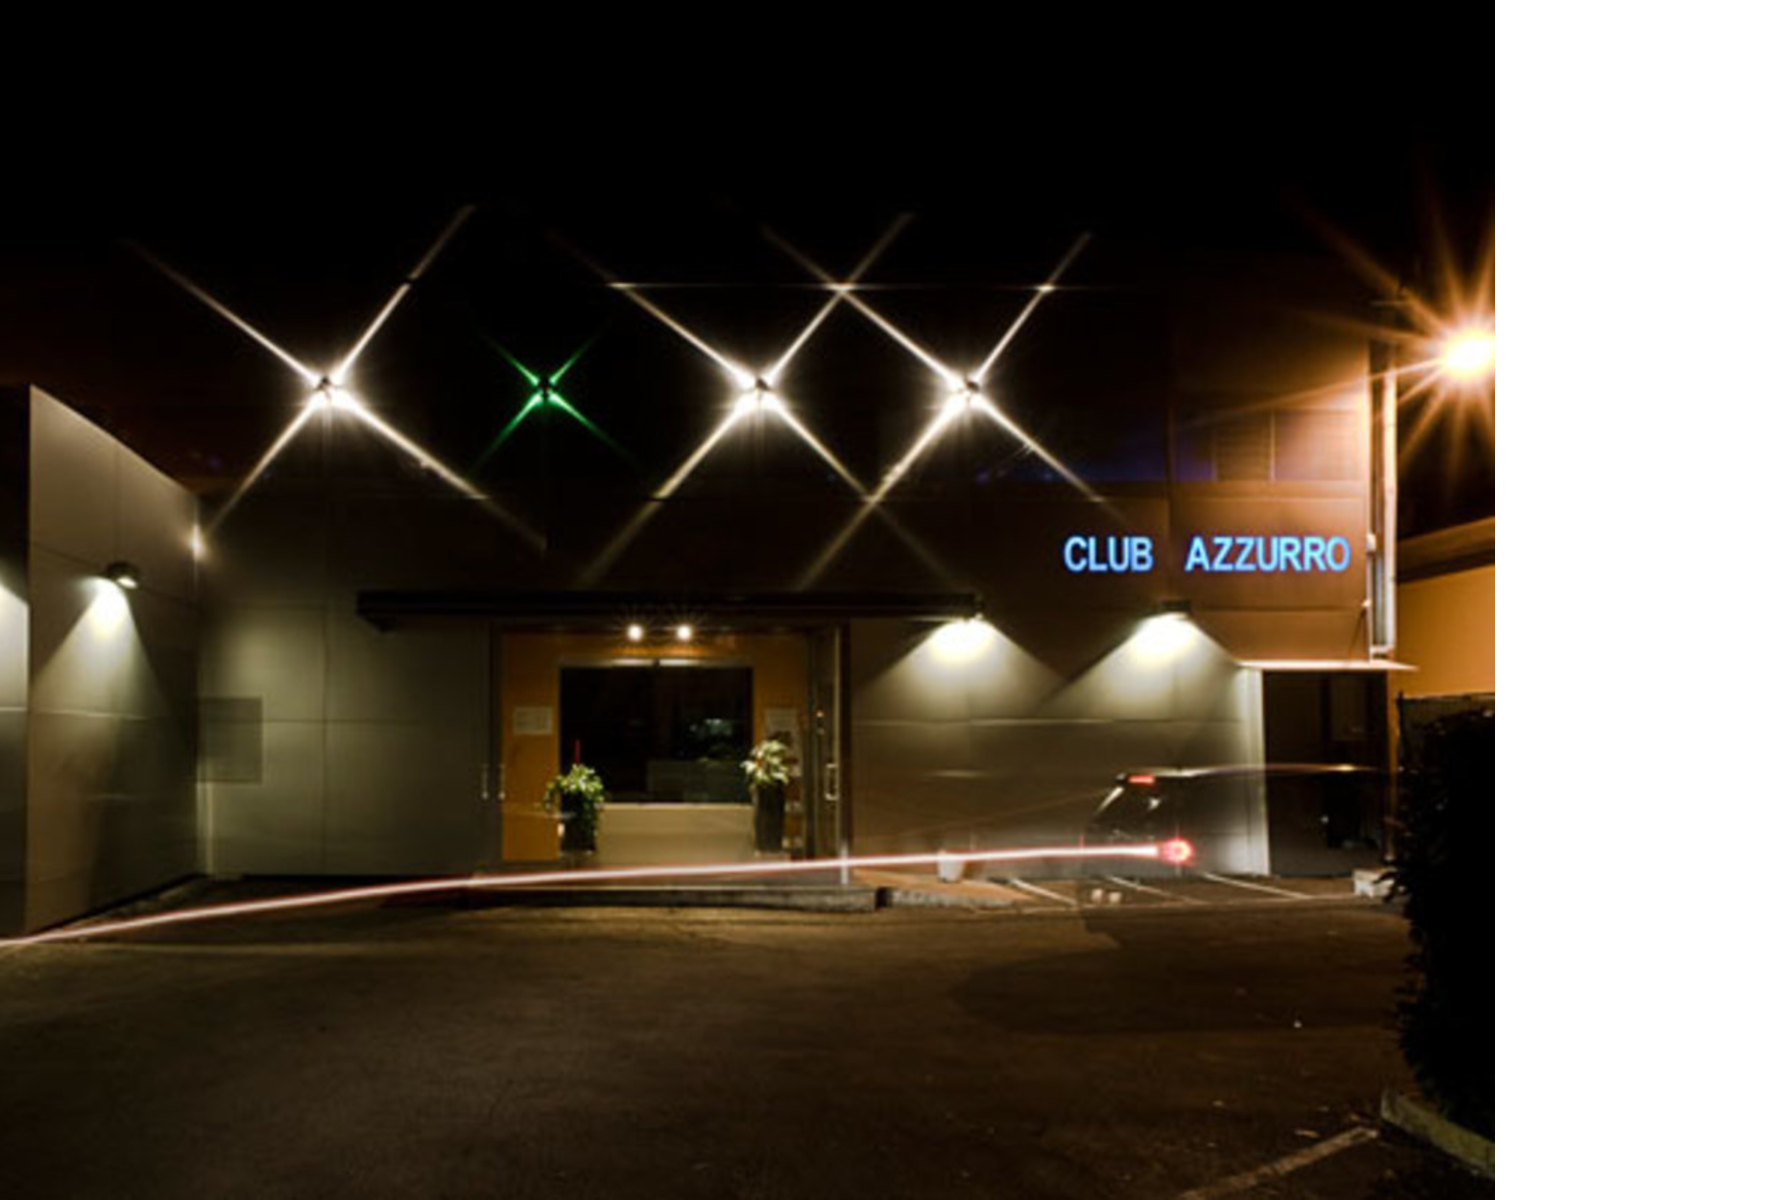 Club Azzurro: a stone cavern for well-being